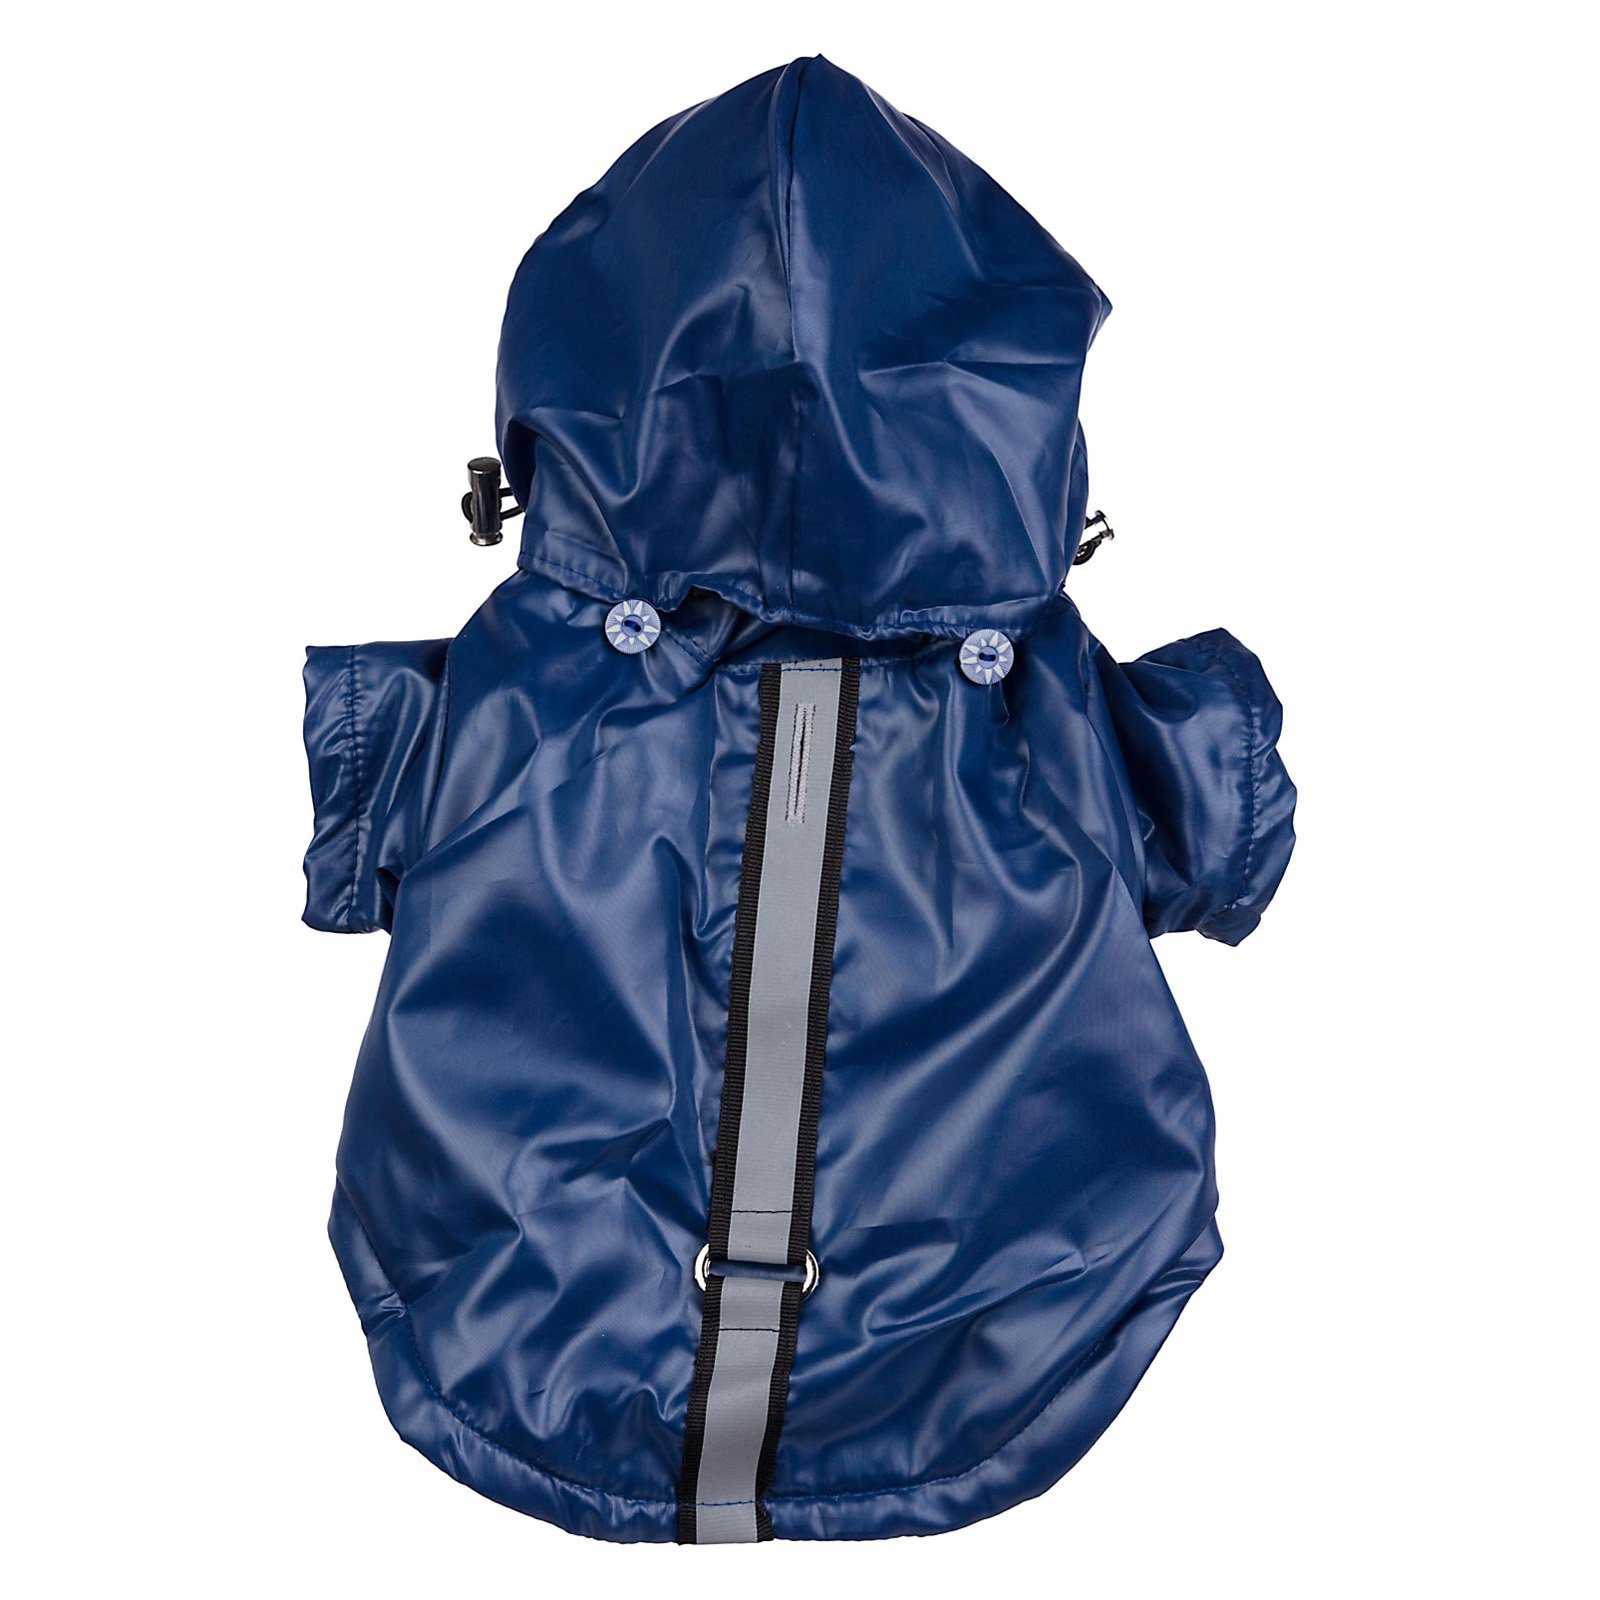 Pet Life All Weather Casual Windbreaker - Blue